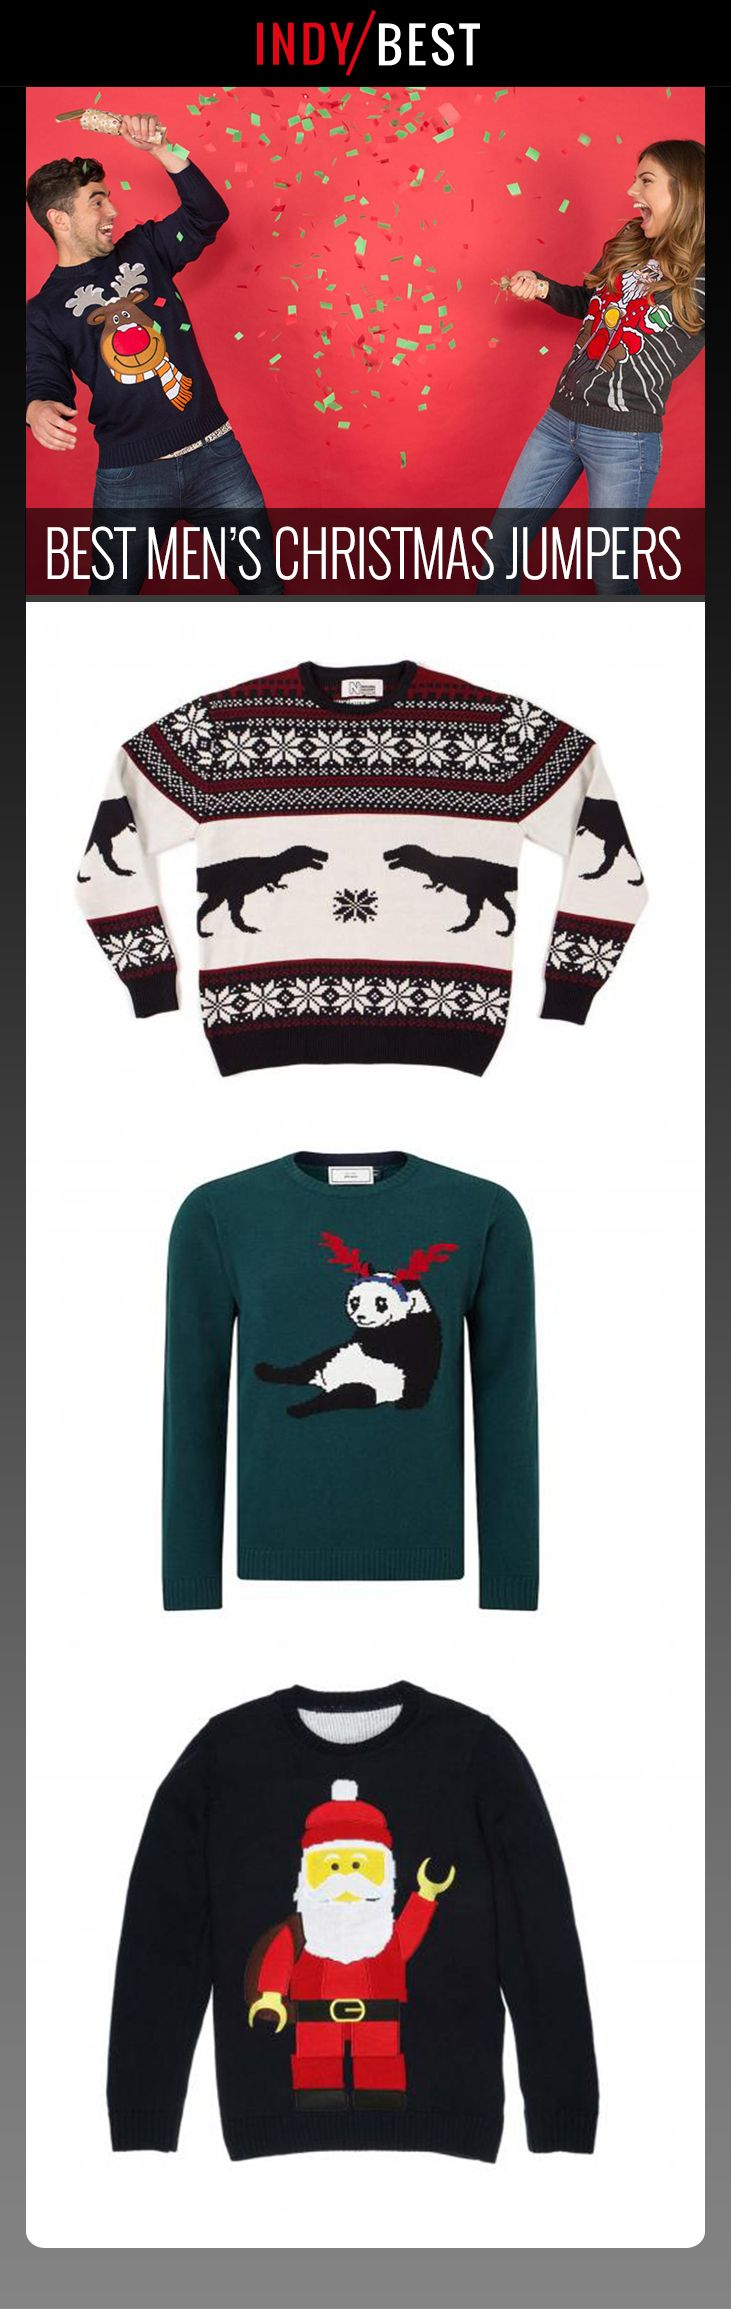 Our pick of the best Christmas jumpers for men: http://ind.pn/2A6N96o